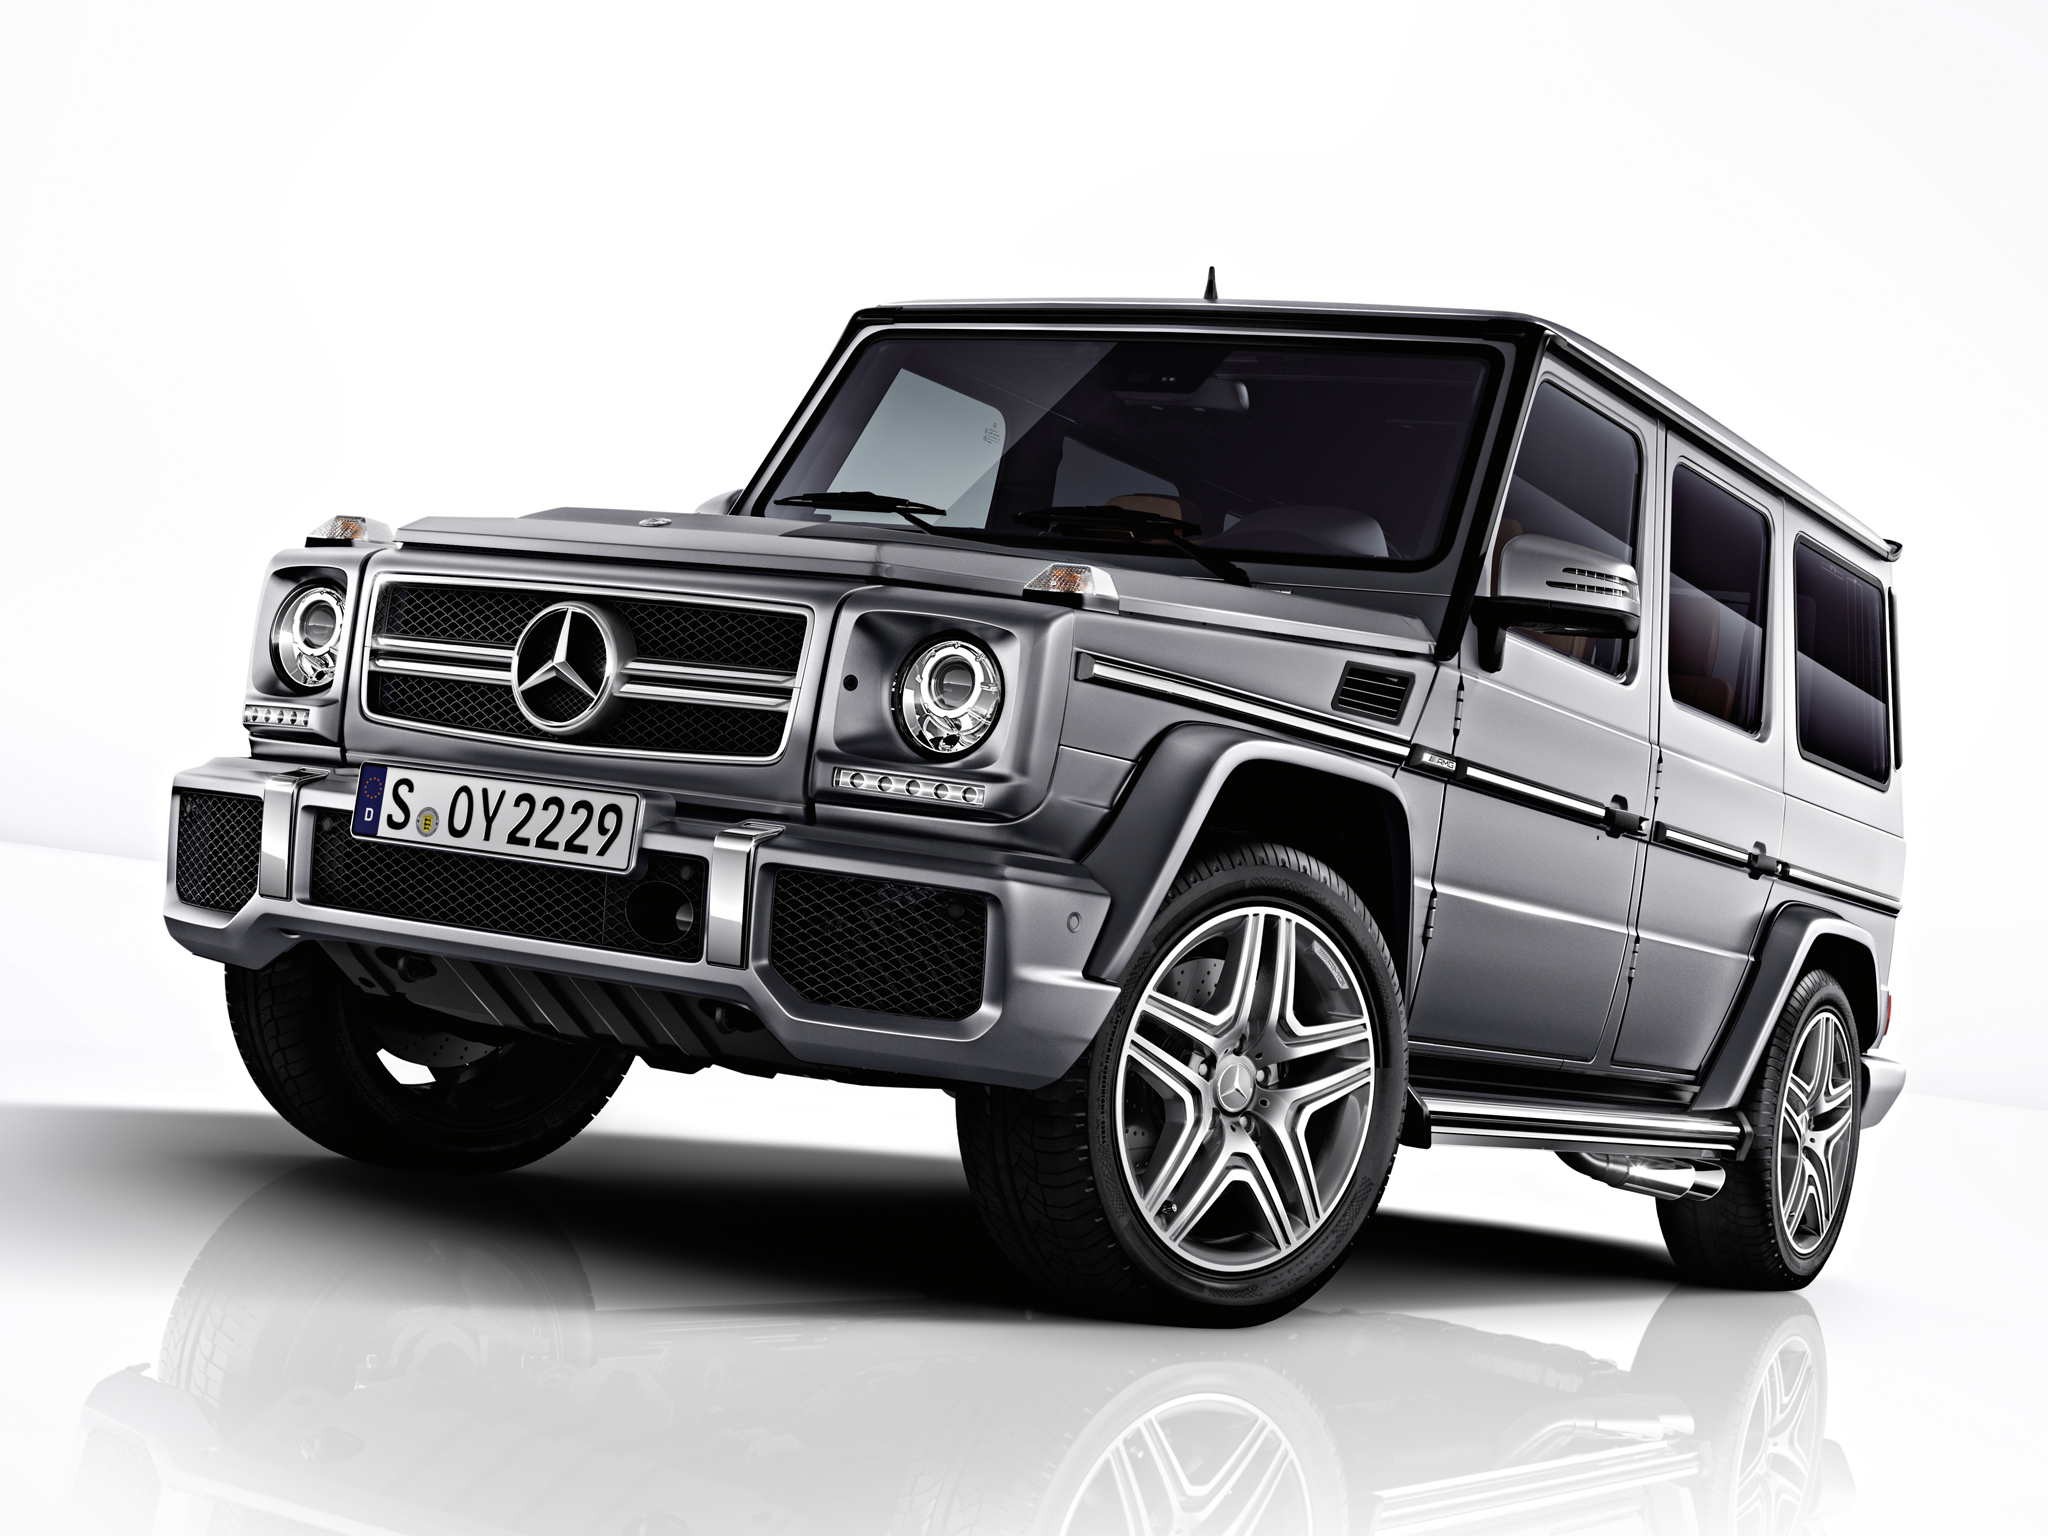 Mercedes benz g class amg photos reviews news specs for Mercedes benz g63 amg 2013 price